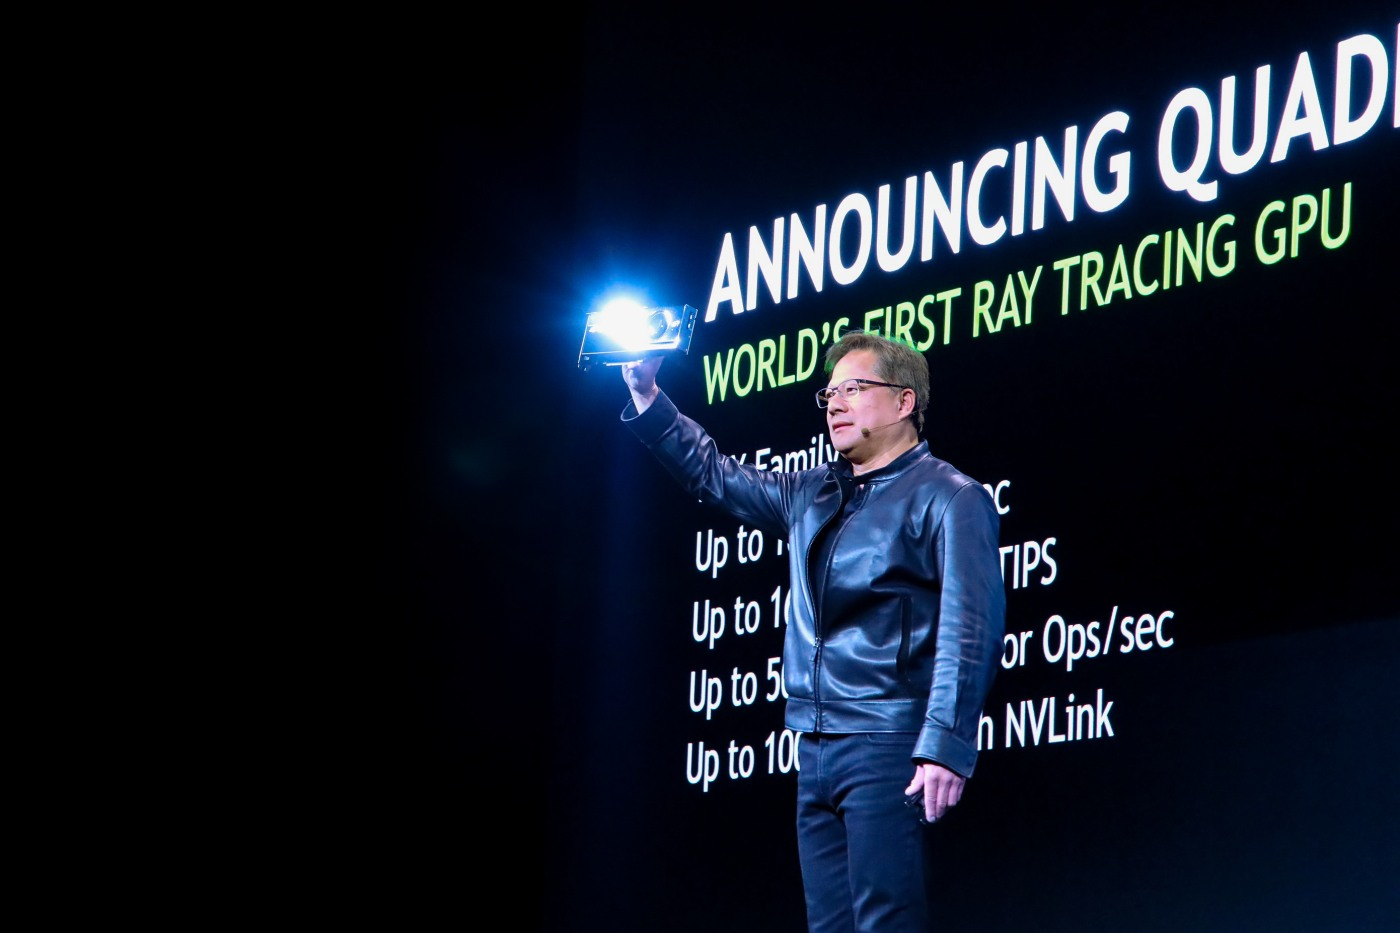 NVIDIA's Turing-powered GPUs are the first ever built for ray tracing